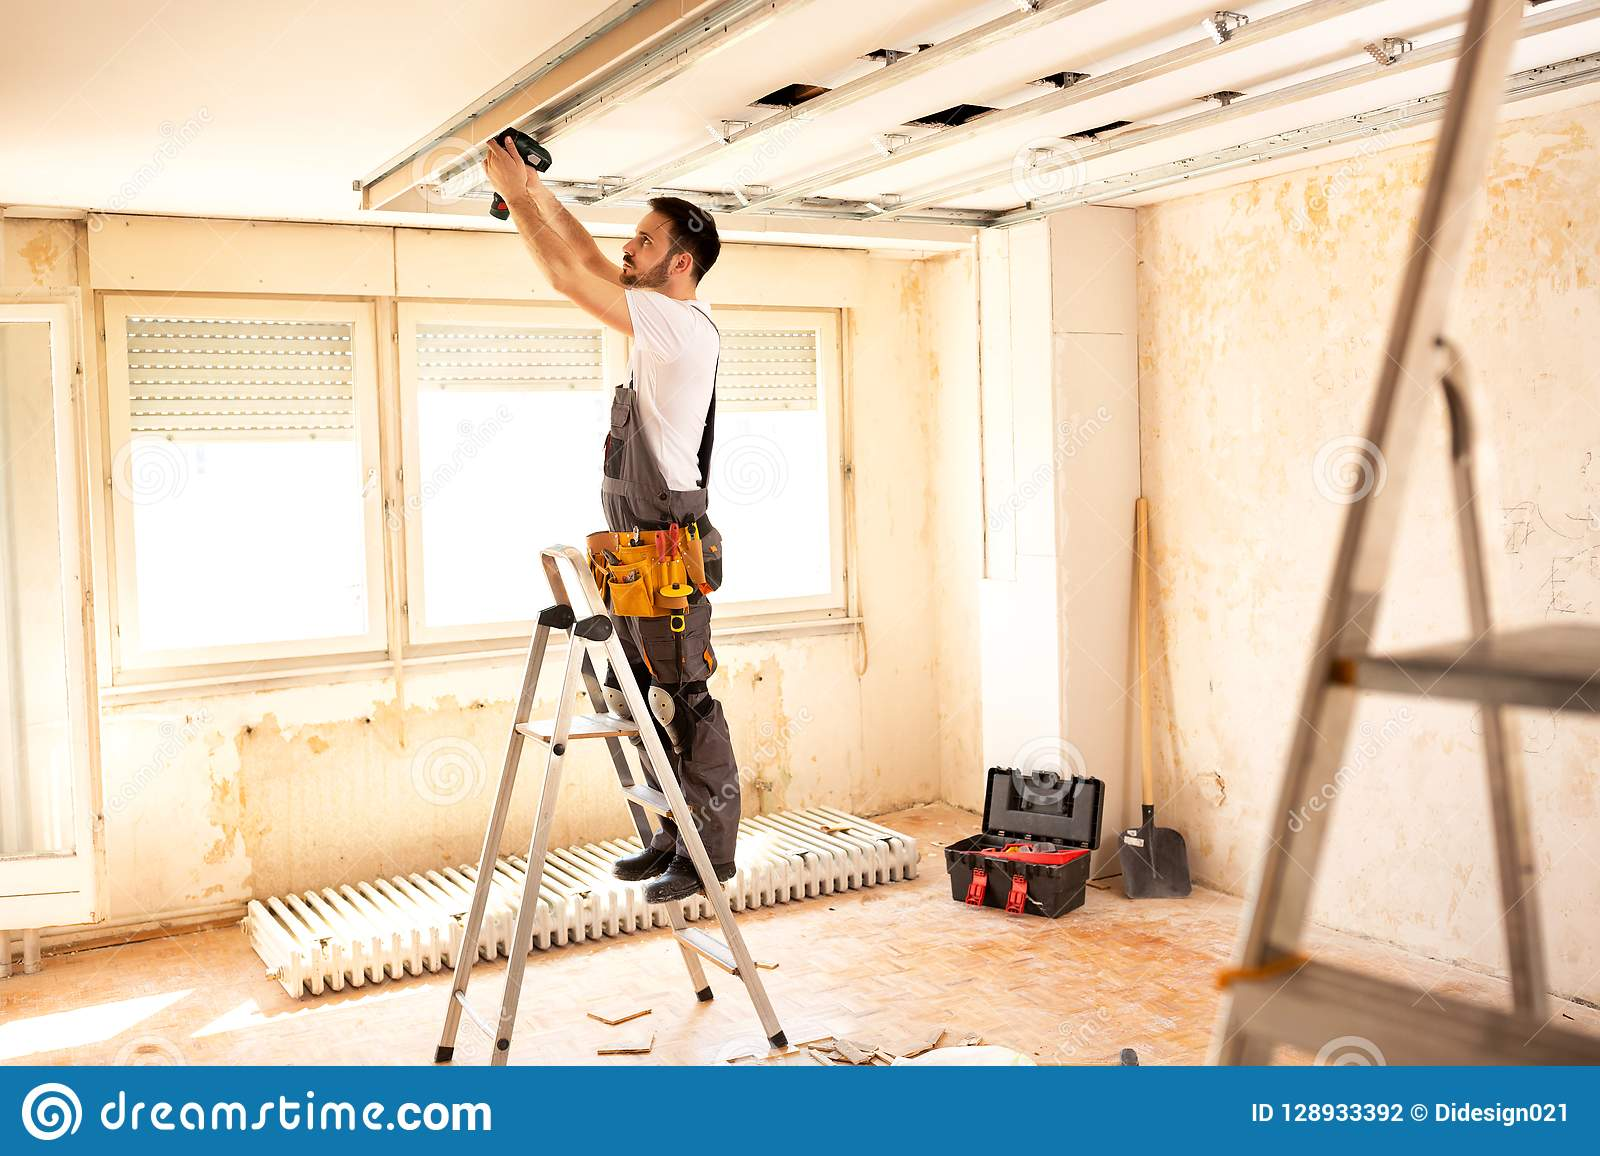 Crafty worker arranging ceiling construction